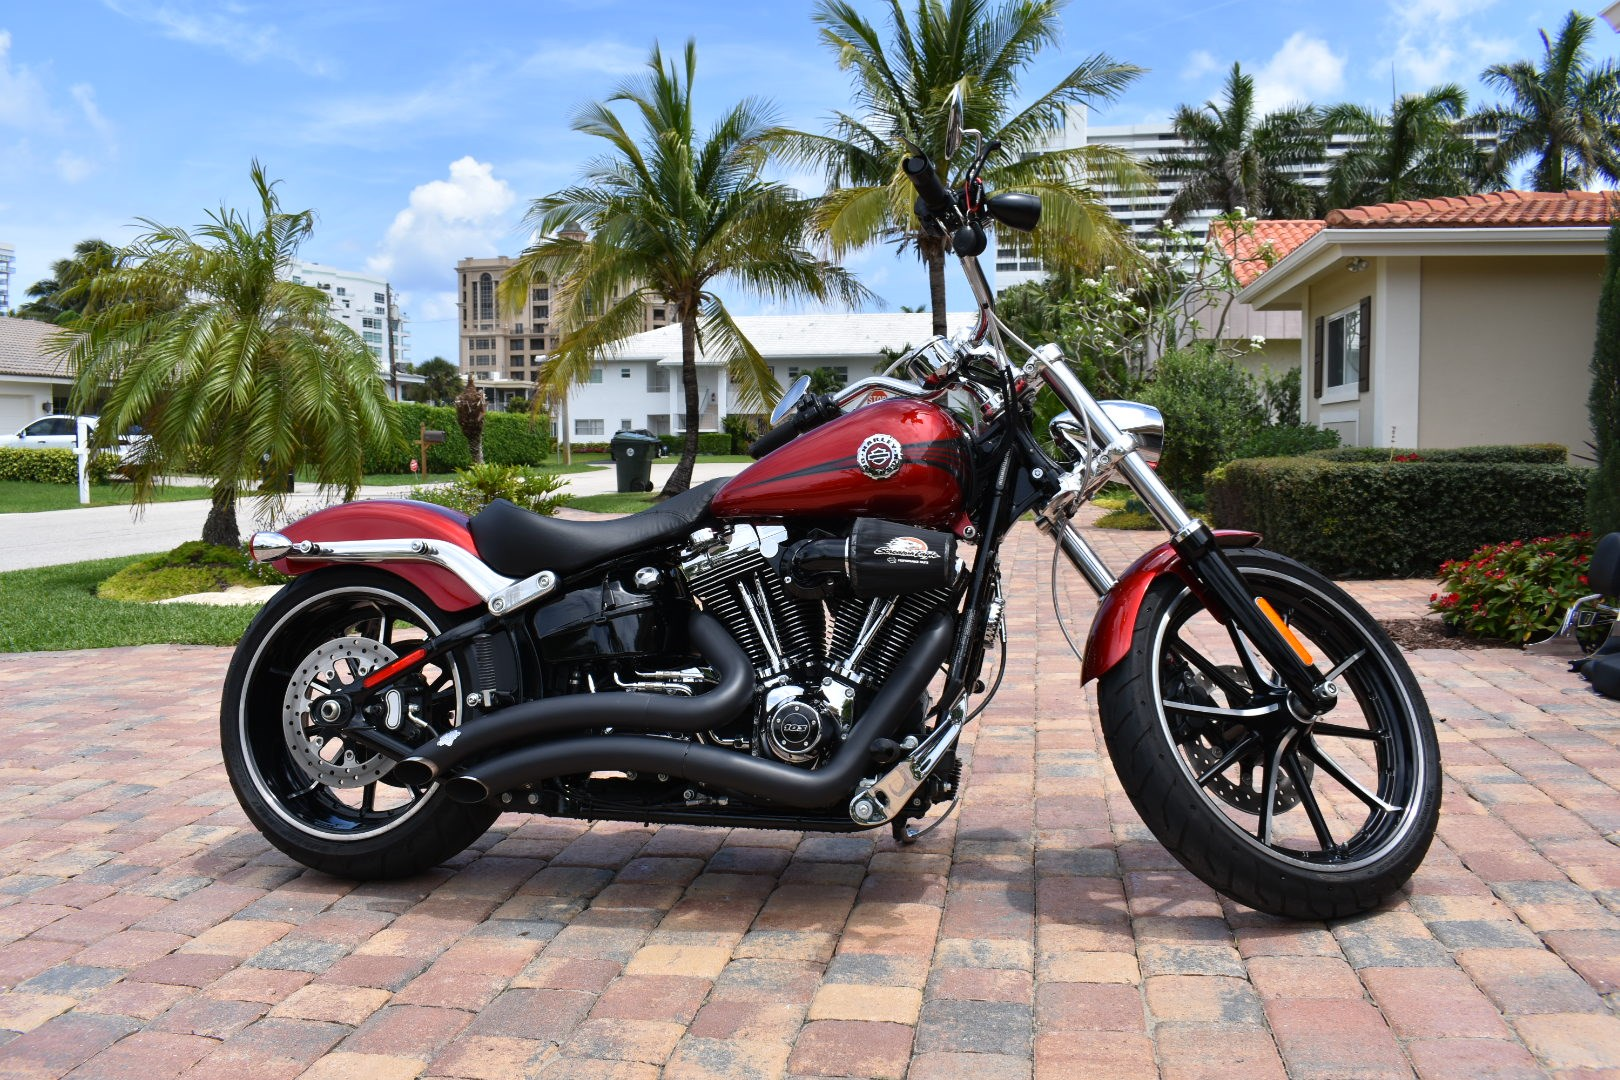 all new used harley davidson softail breakout for sale 709 bikes page 1 chopperexchange. Black Bedroom Furniture Sets. Home Design Ideas